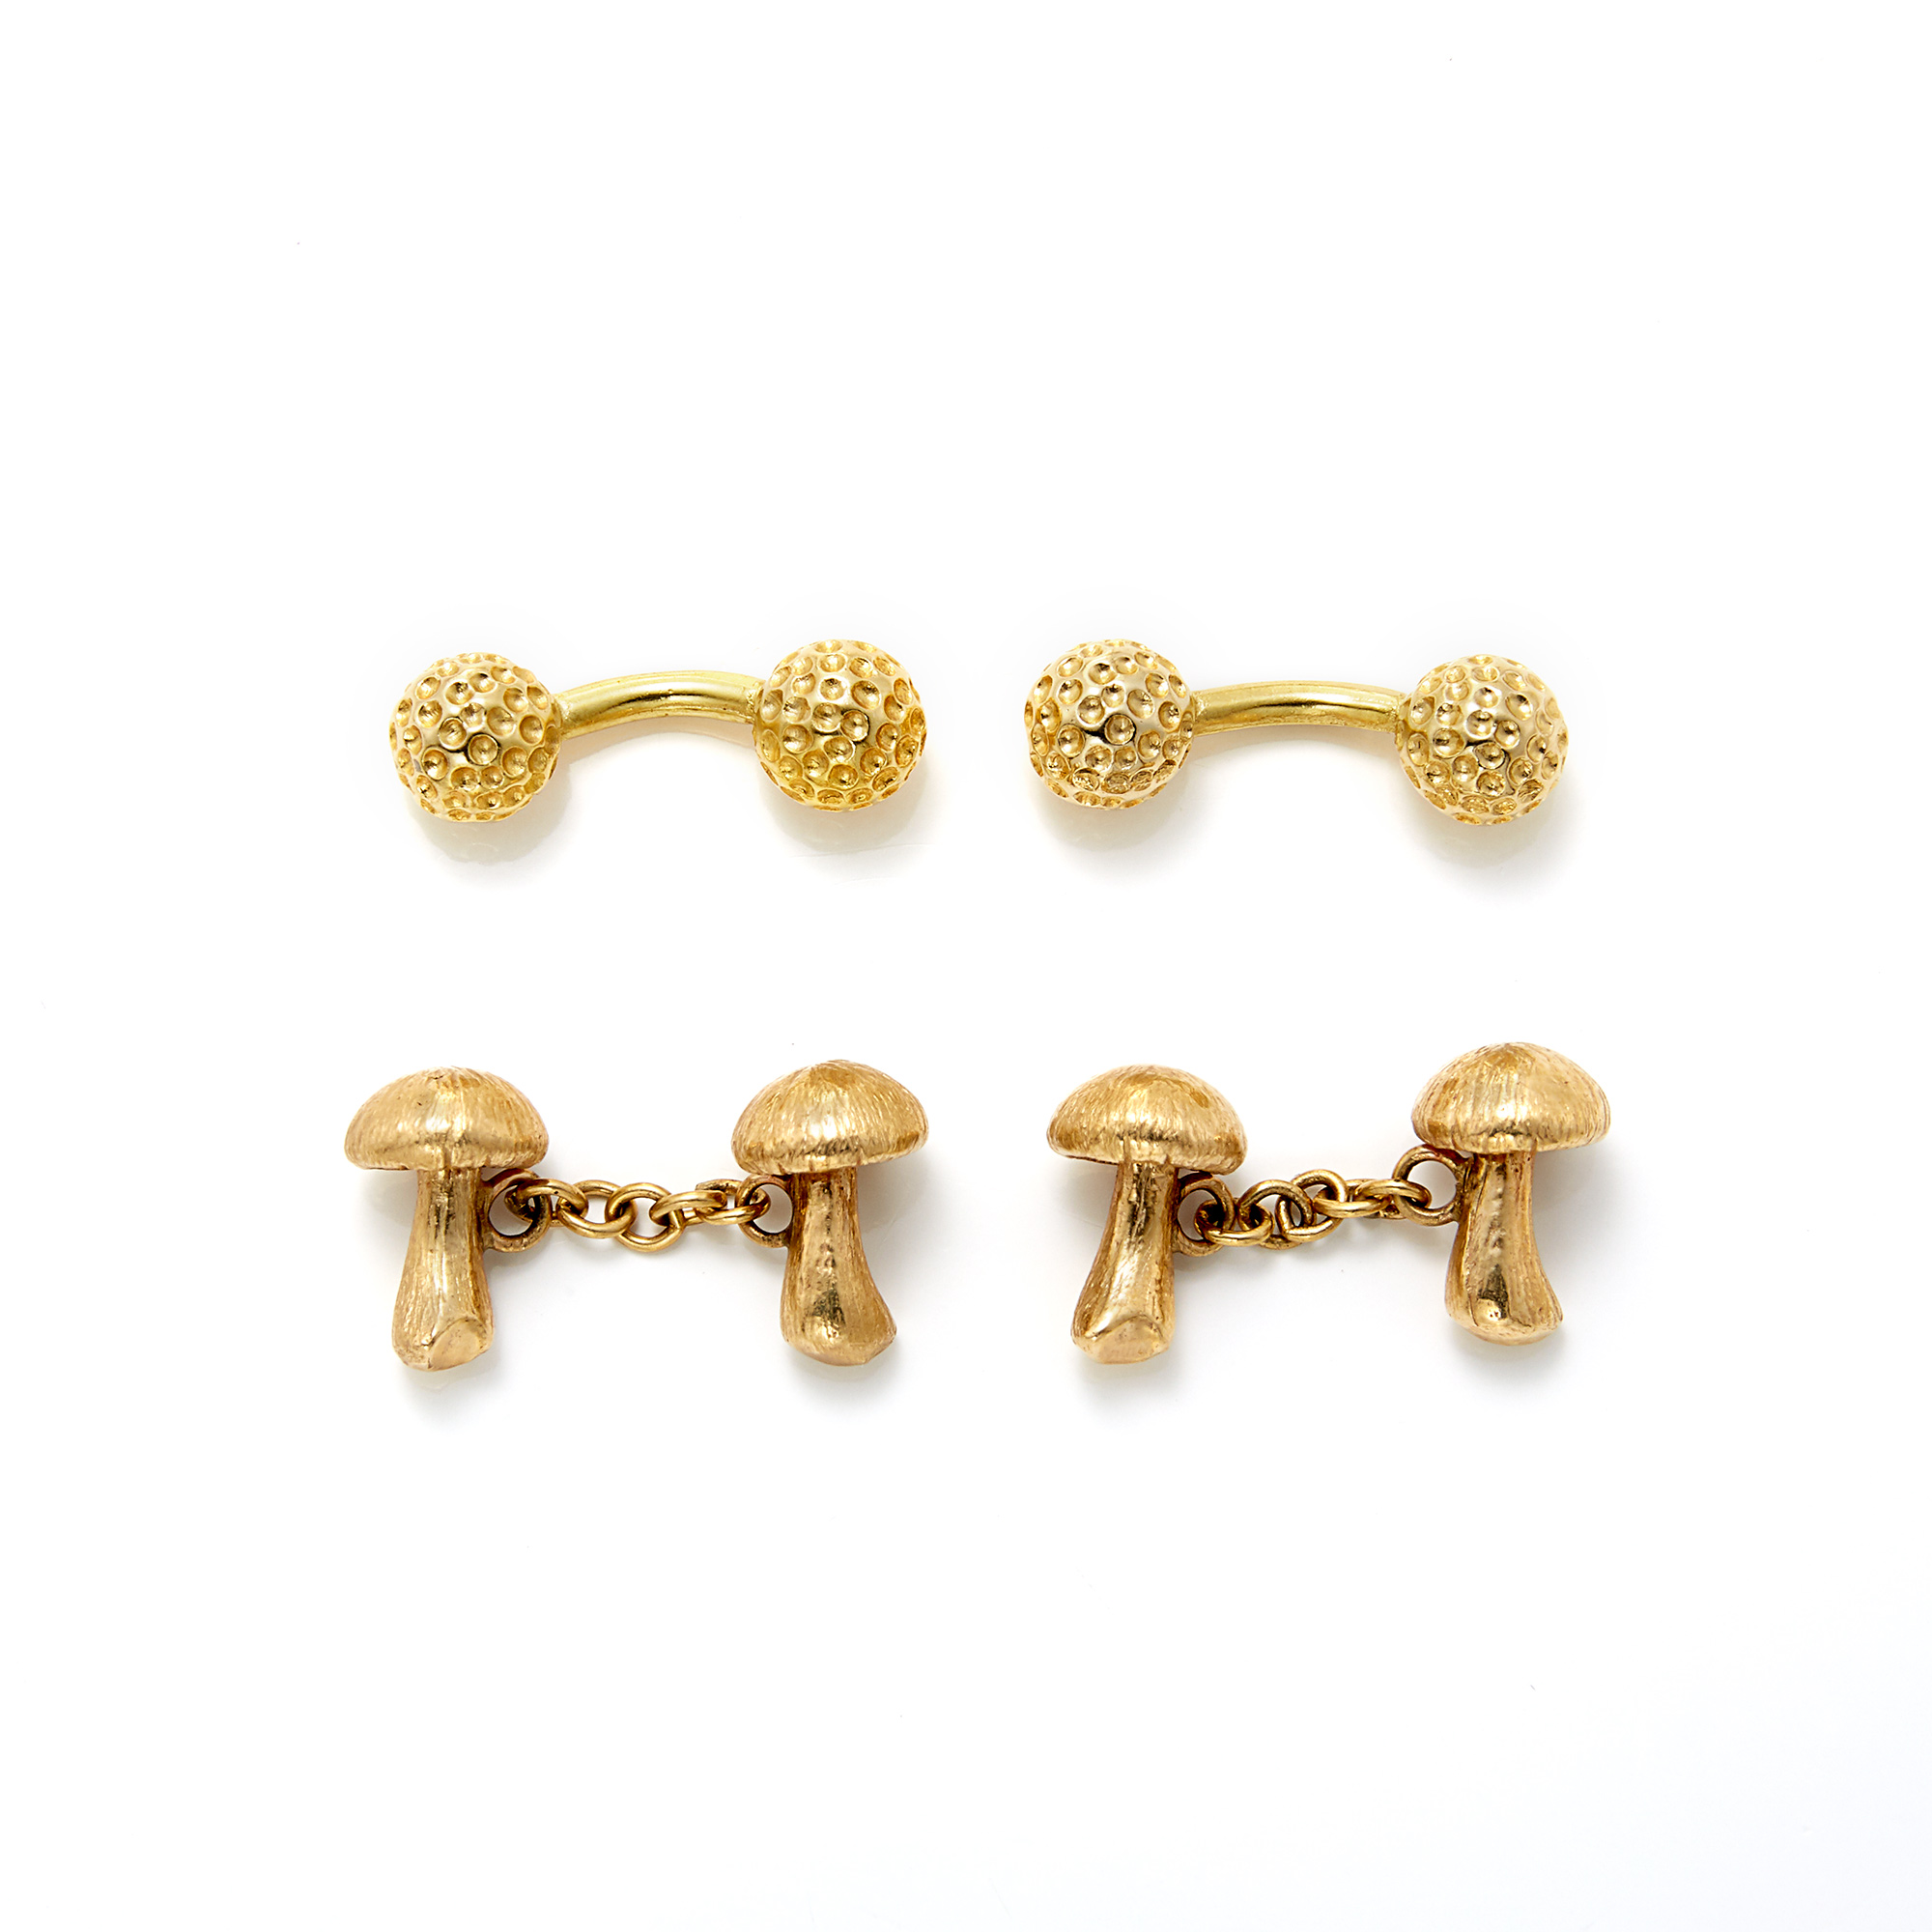 Lot image - Pair of Gold Mushroom Cufflinks and Pair of Golf Ball Cufflinks